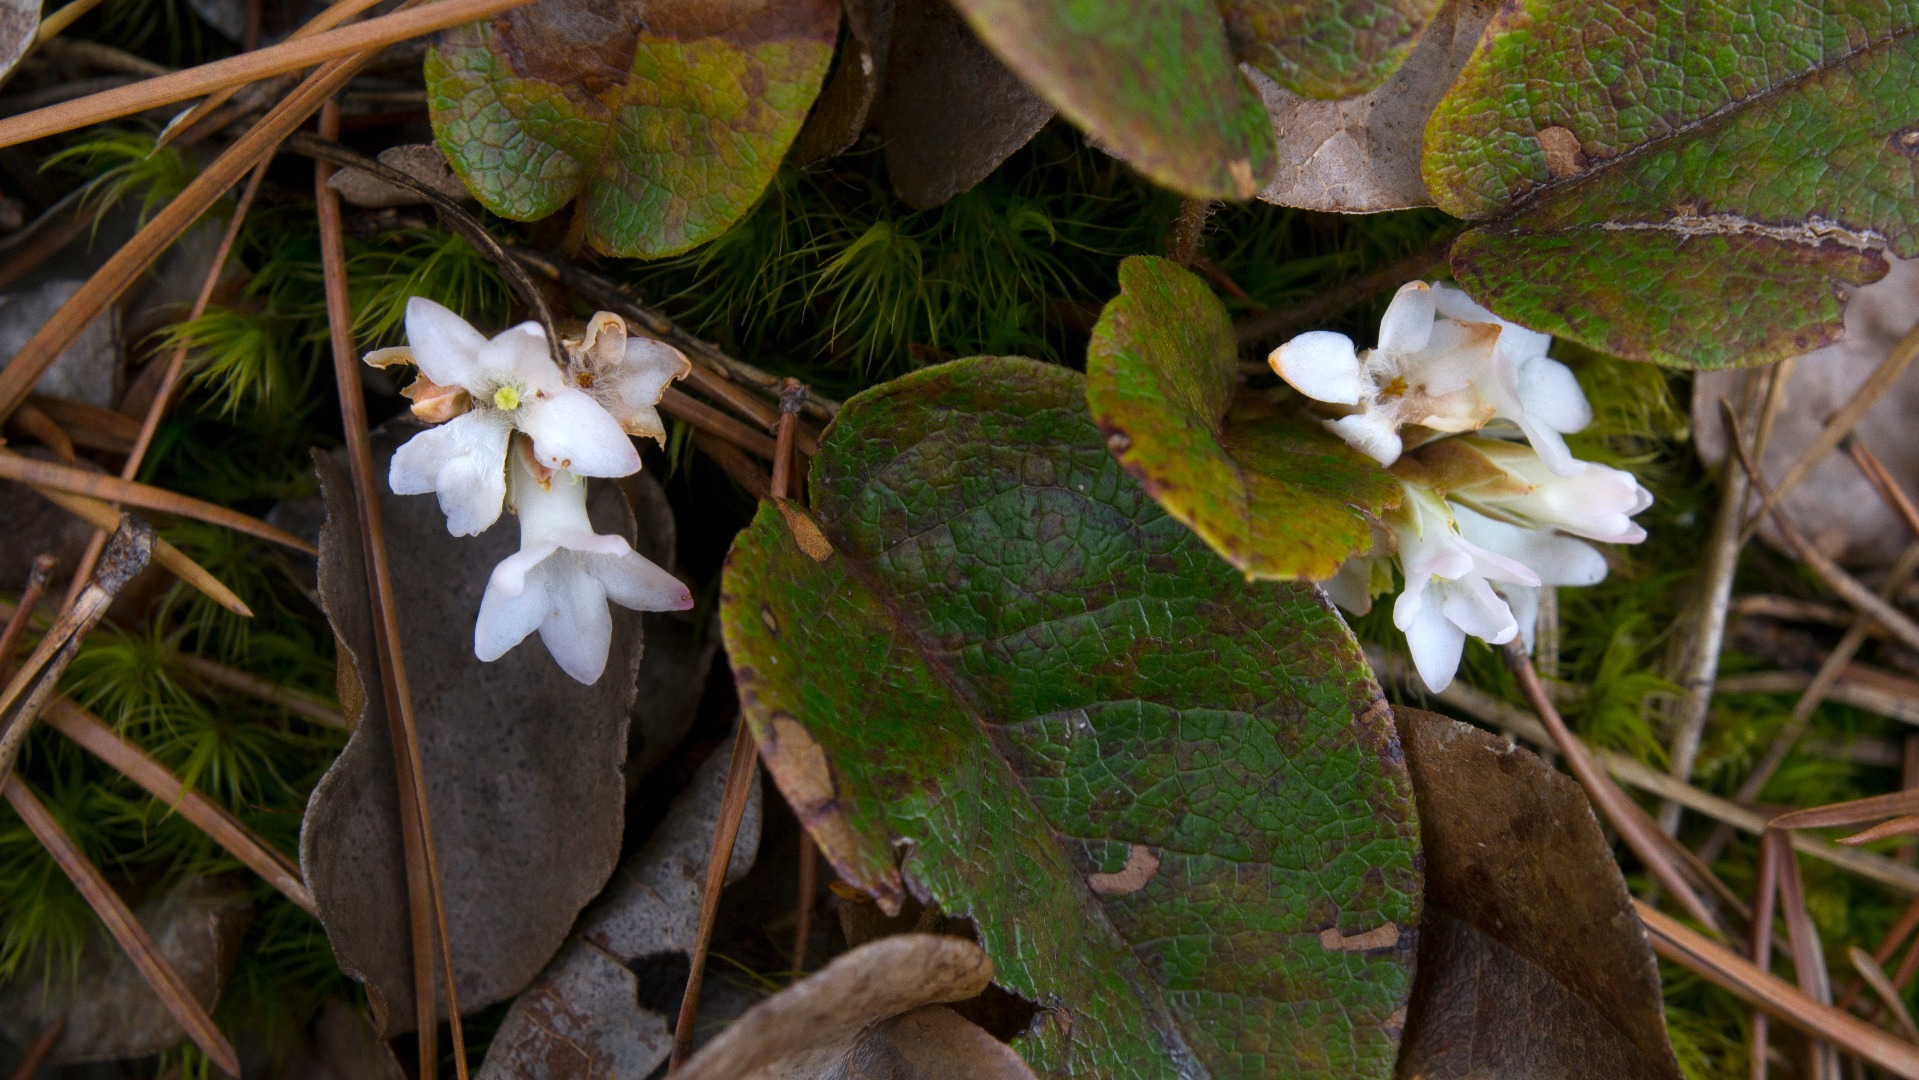 Trailing Arbutus photo by Gary Wilson